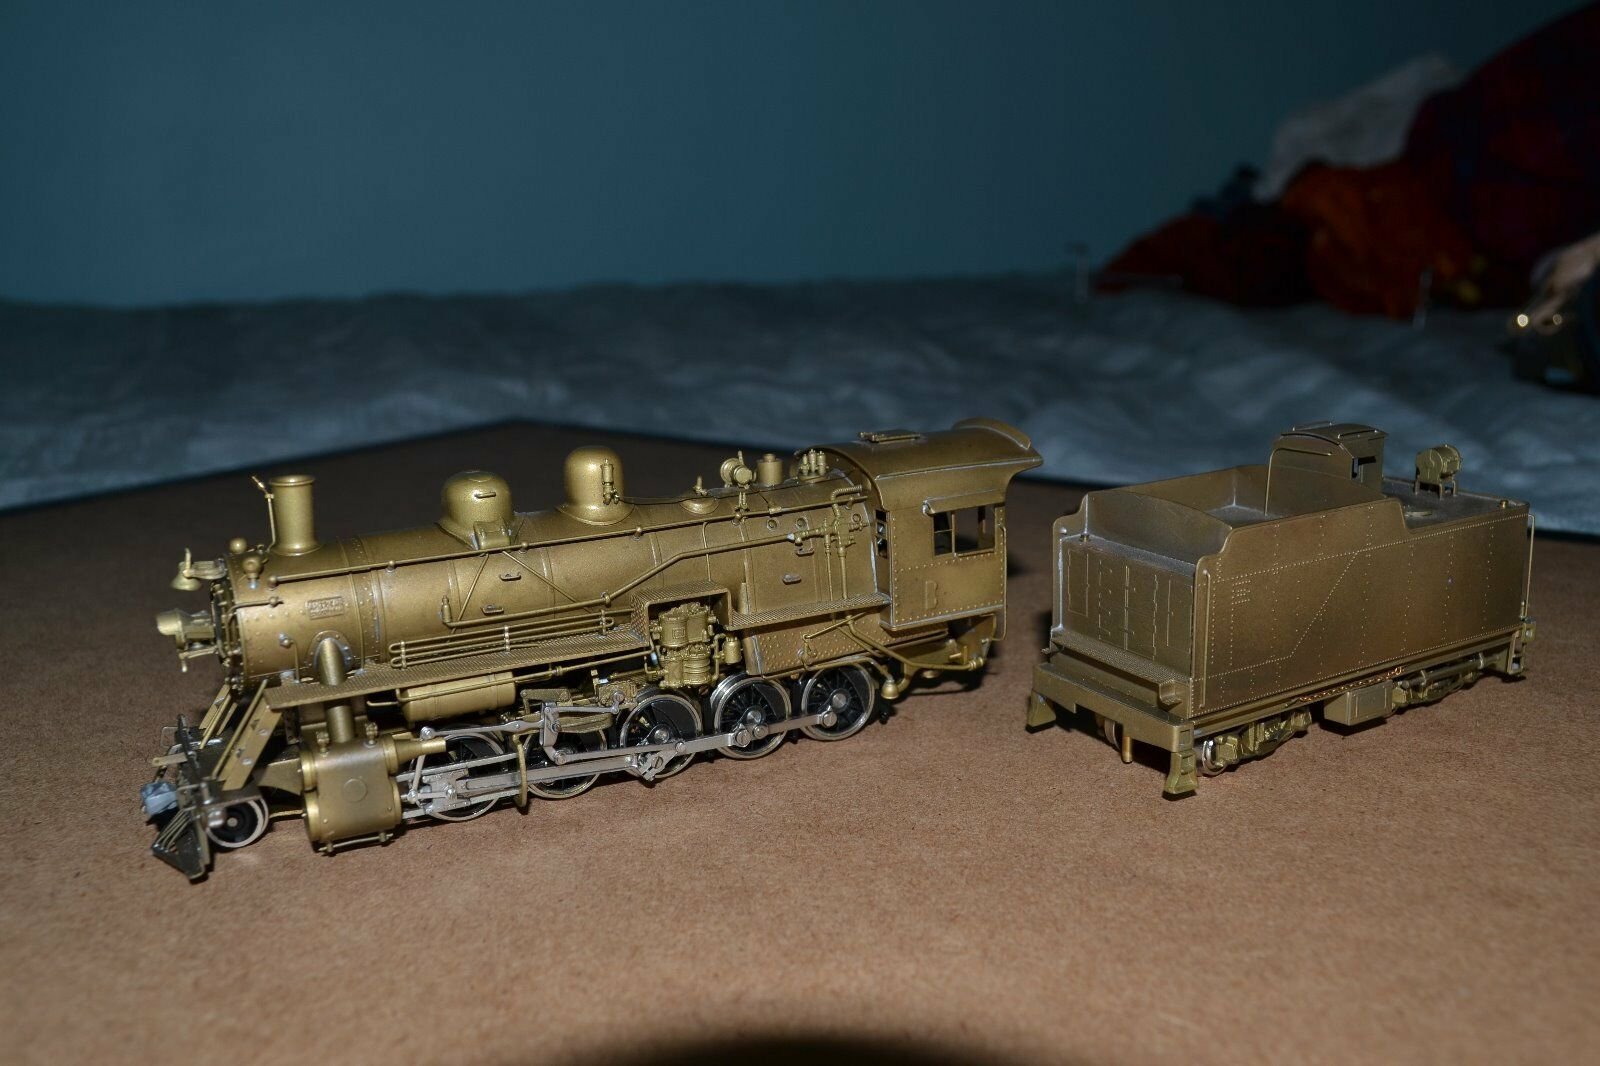 United PFM Brass - Frisco 2-10-0 Russian - HO Scale - Runs Poorly, Needs Tune-up